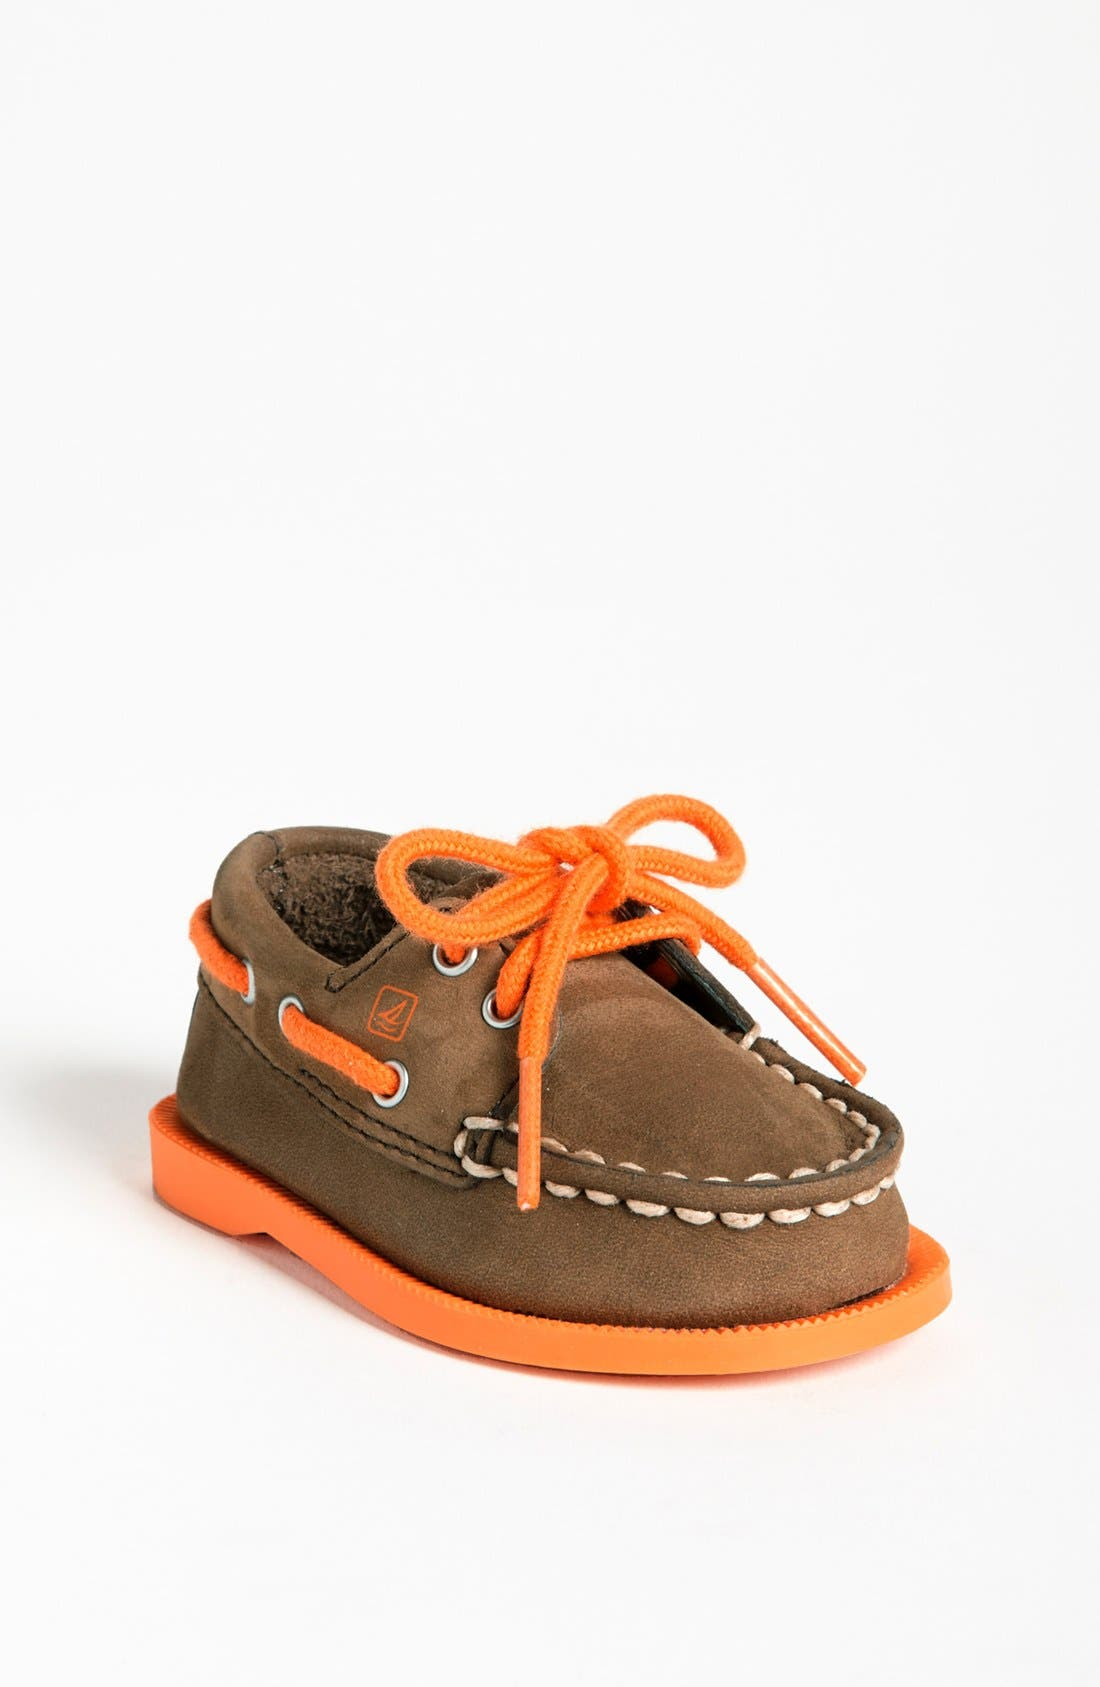 Alternate Image 1 Selected - Sperry Top-Sider® Kids 'Authentic Original' Crib Shoe (Baby) (Online Only)